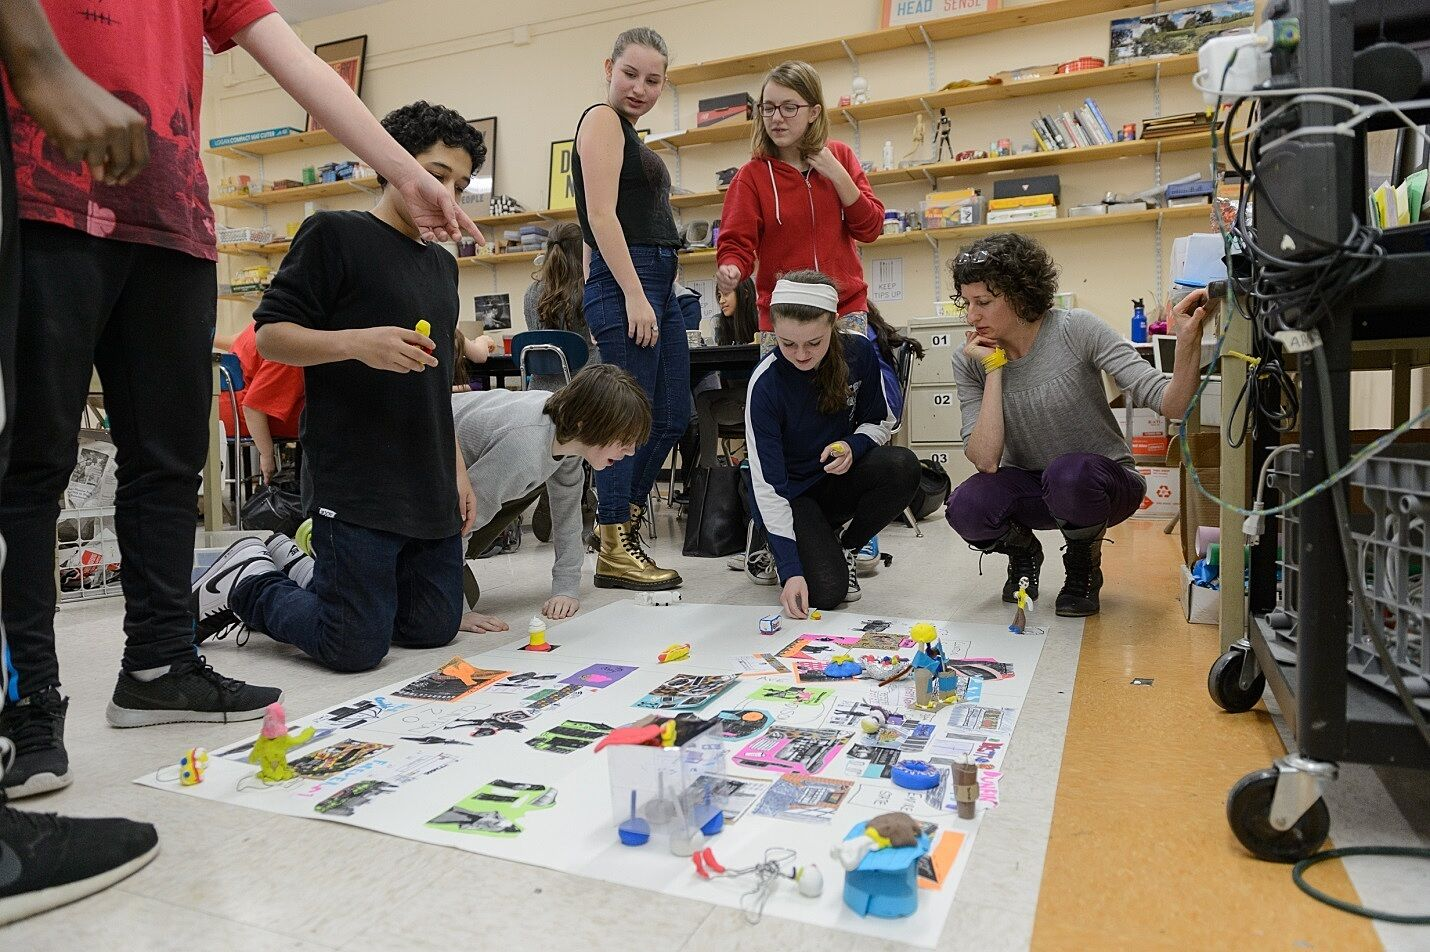 A group of students gathers around their map collage on the floor.